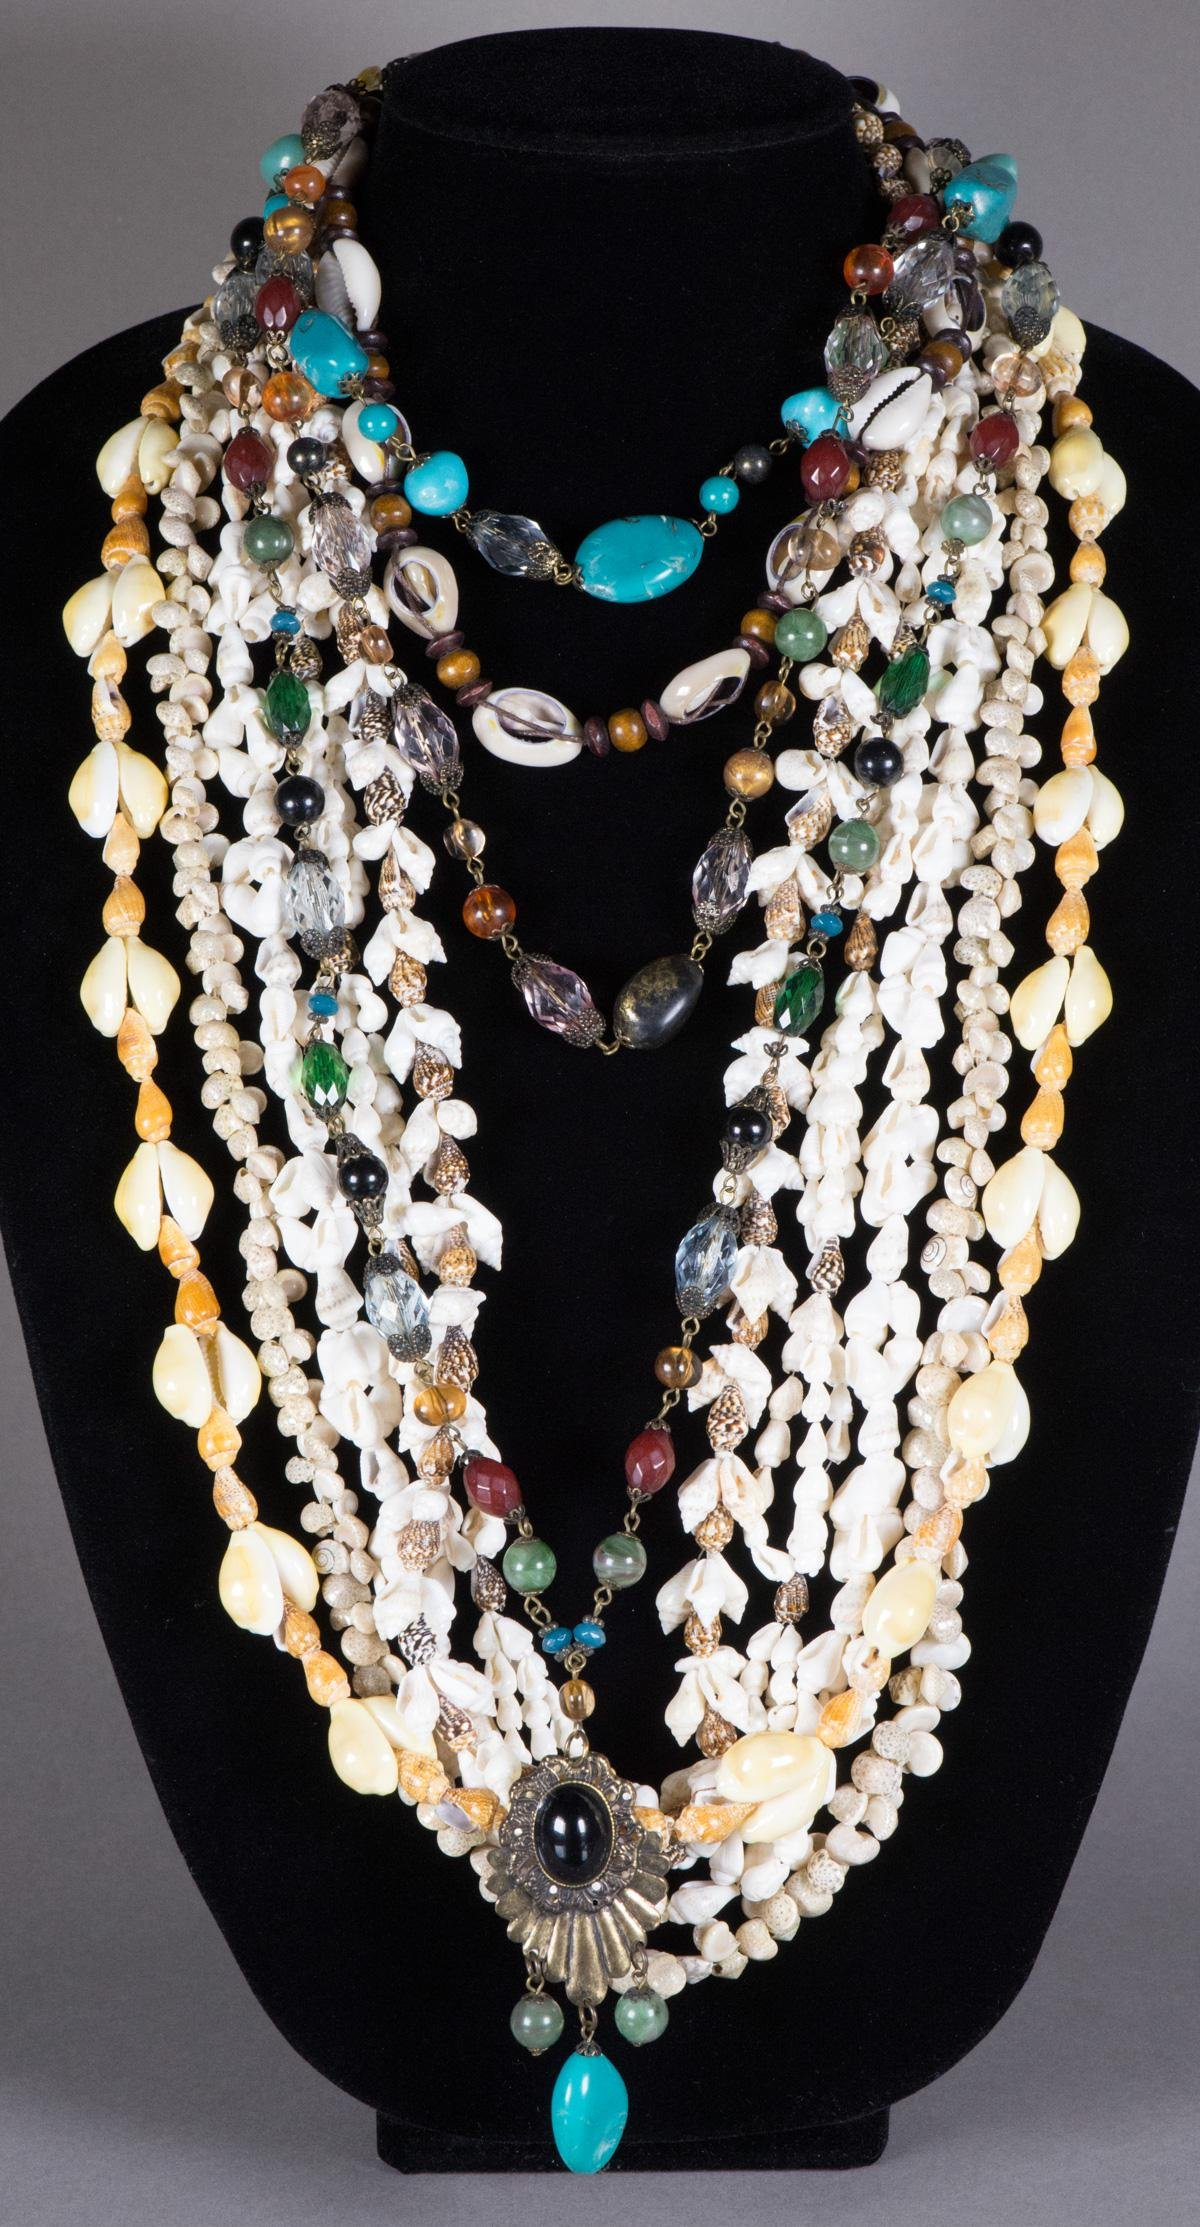 7 Pieces of Chinese Decorative Necklace